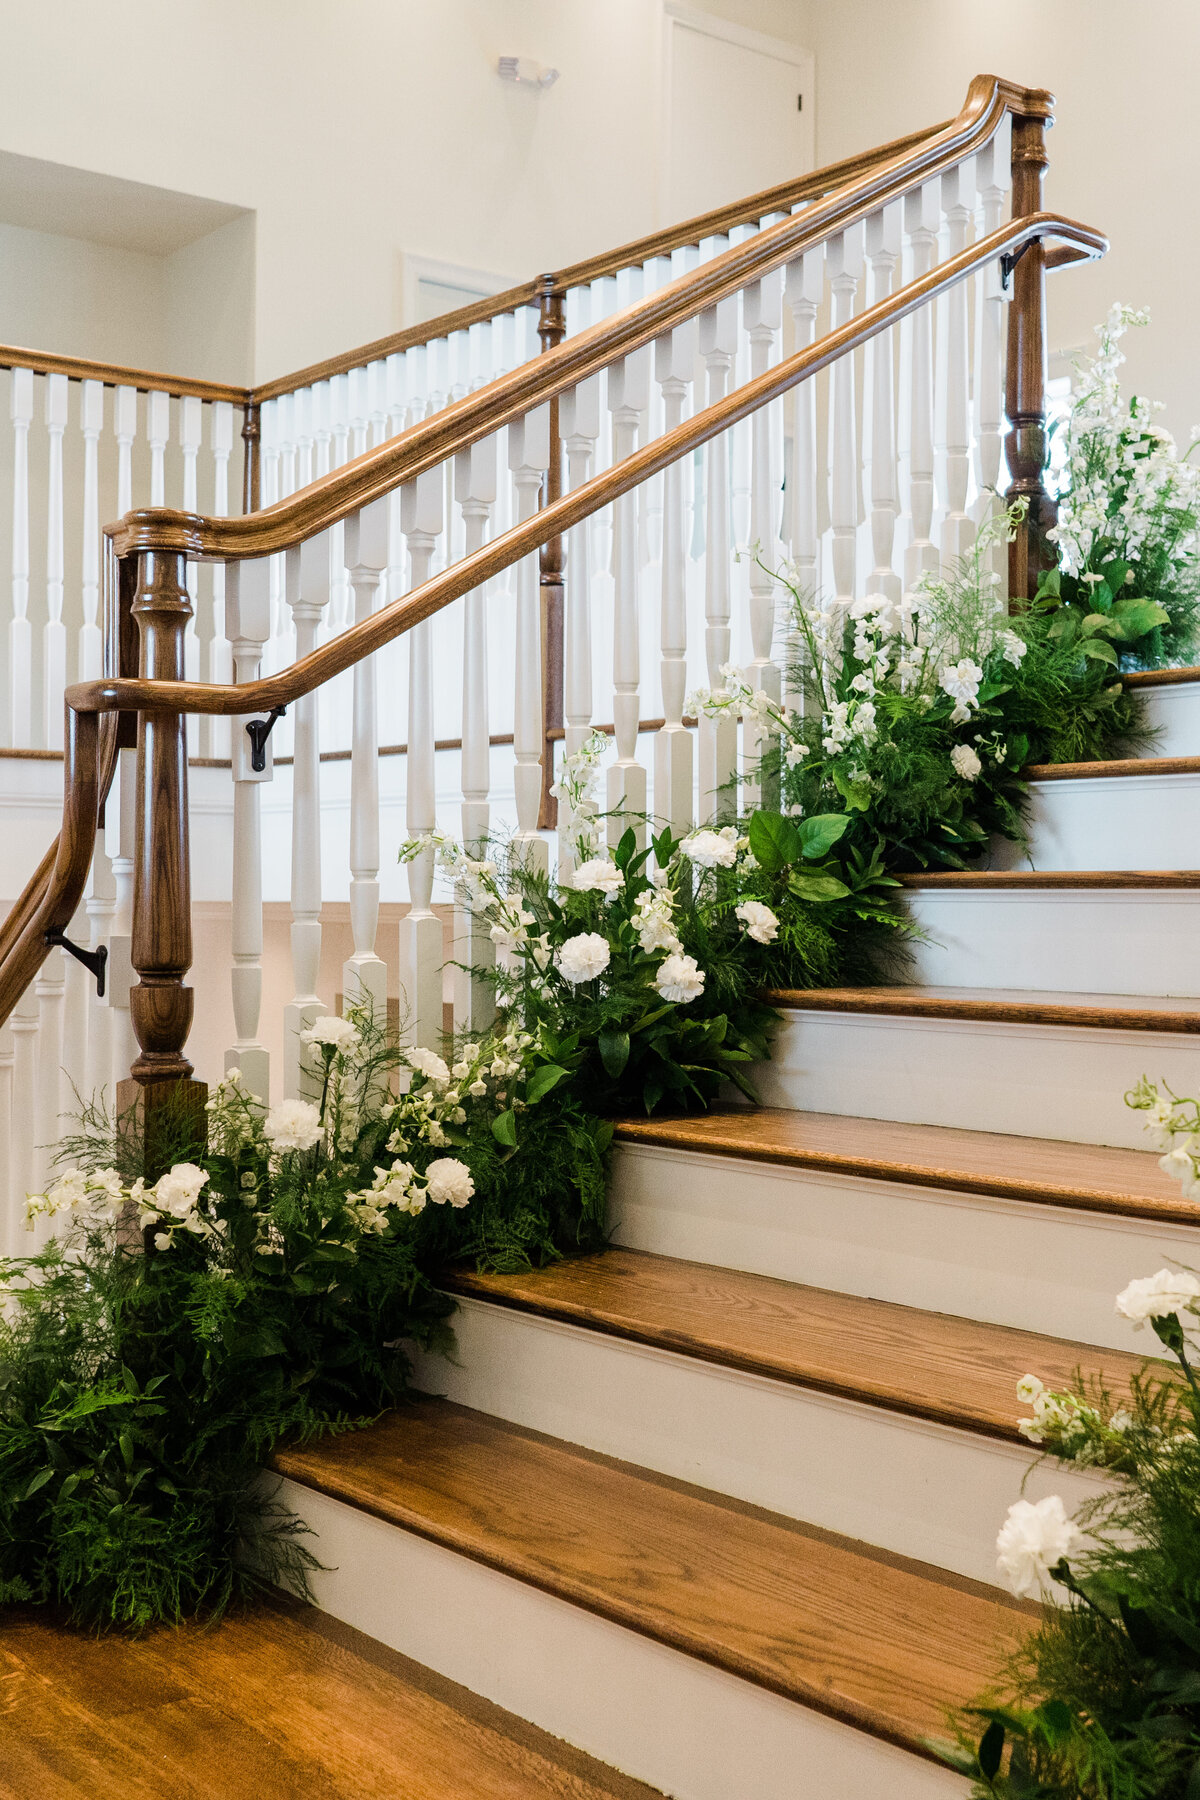 romantic curved staircase surrounded by flowers